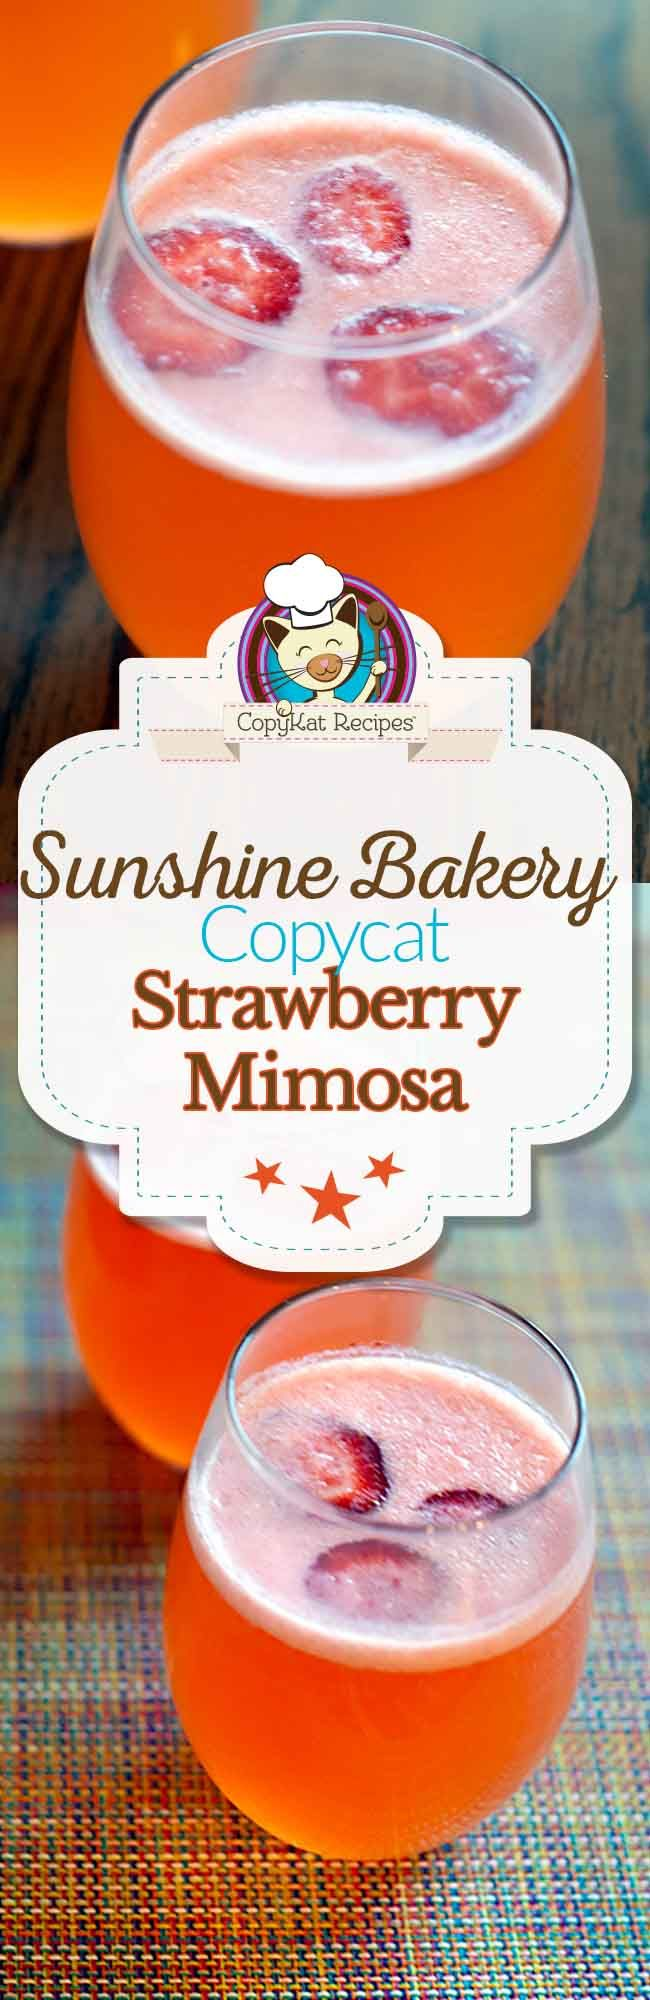 Sunflower Bakery and Cafe Strawberry Mimosa